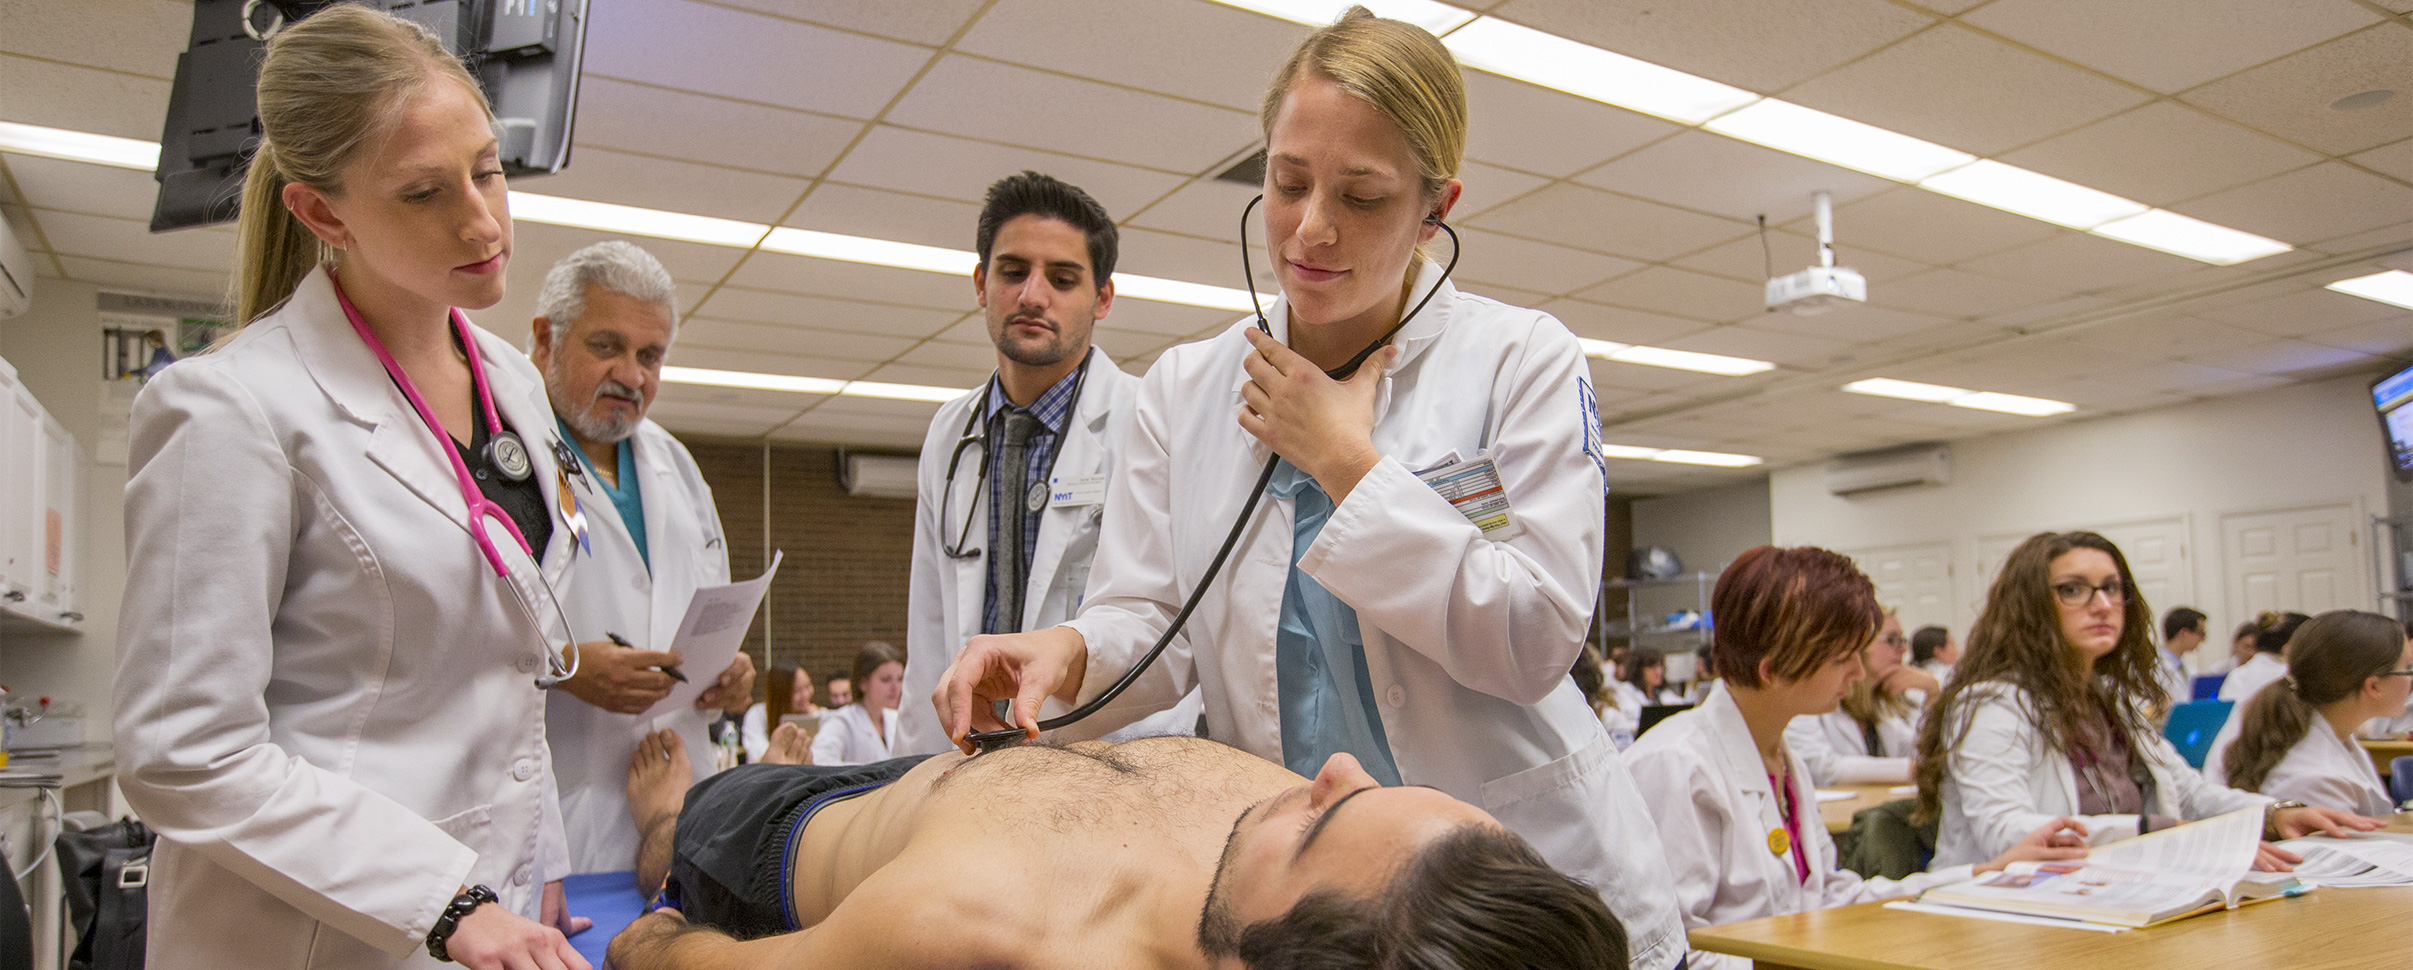 NYIT doctor with stethoscope